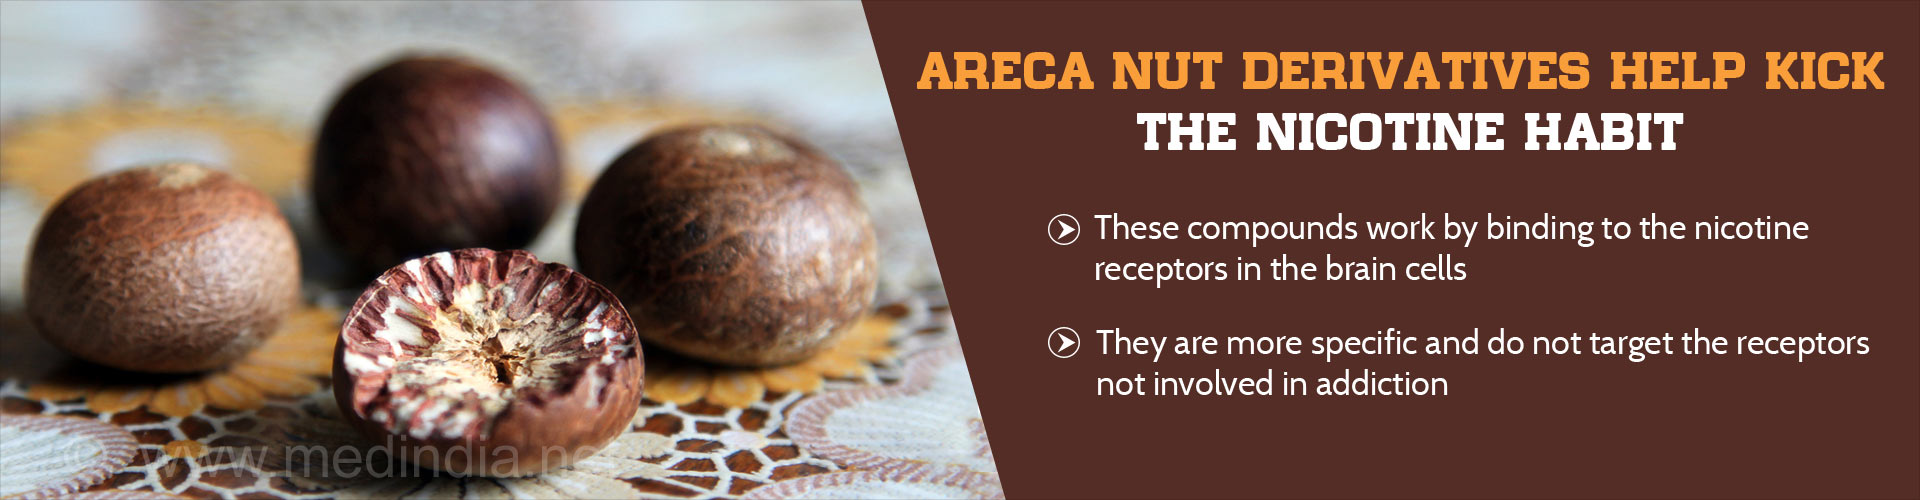 Areca Nut Derivatives Help Kick The Nicotine Habit